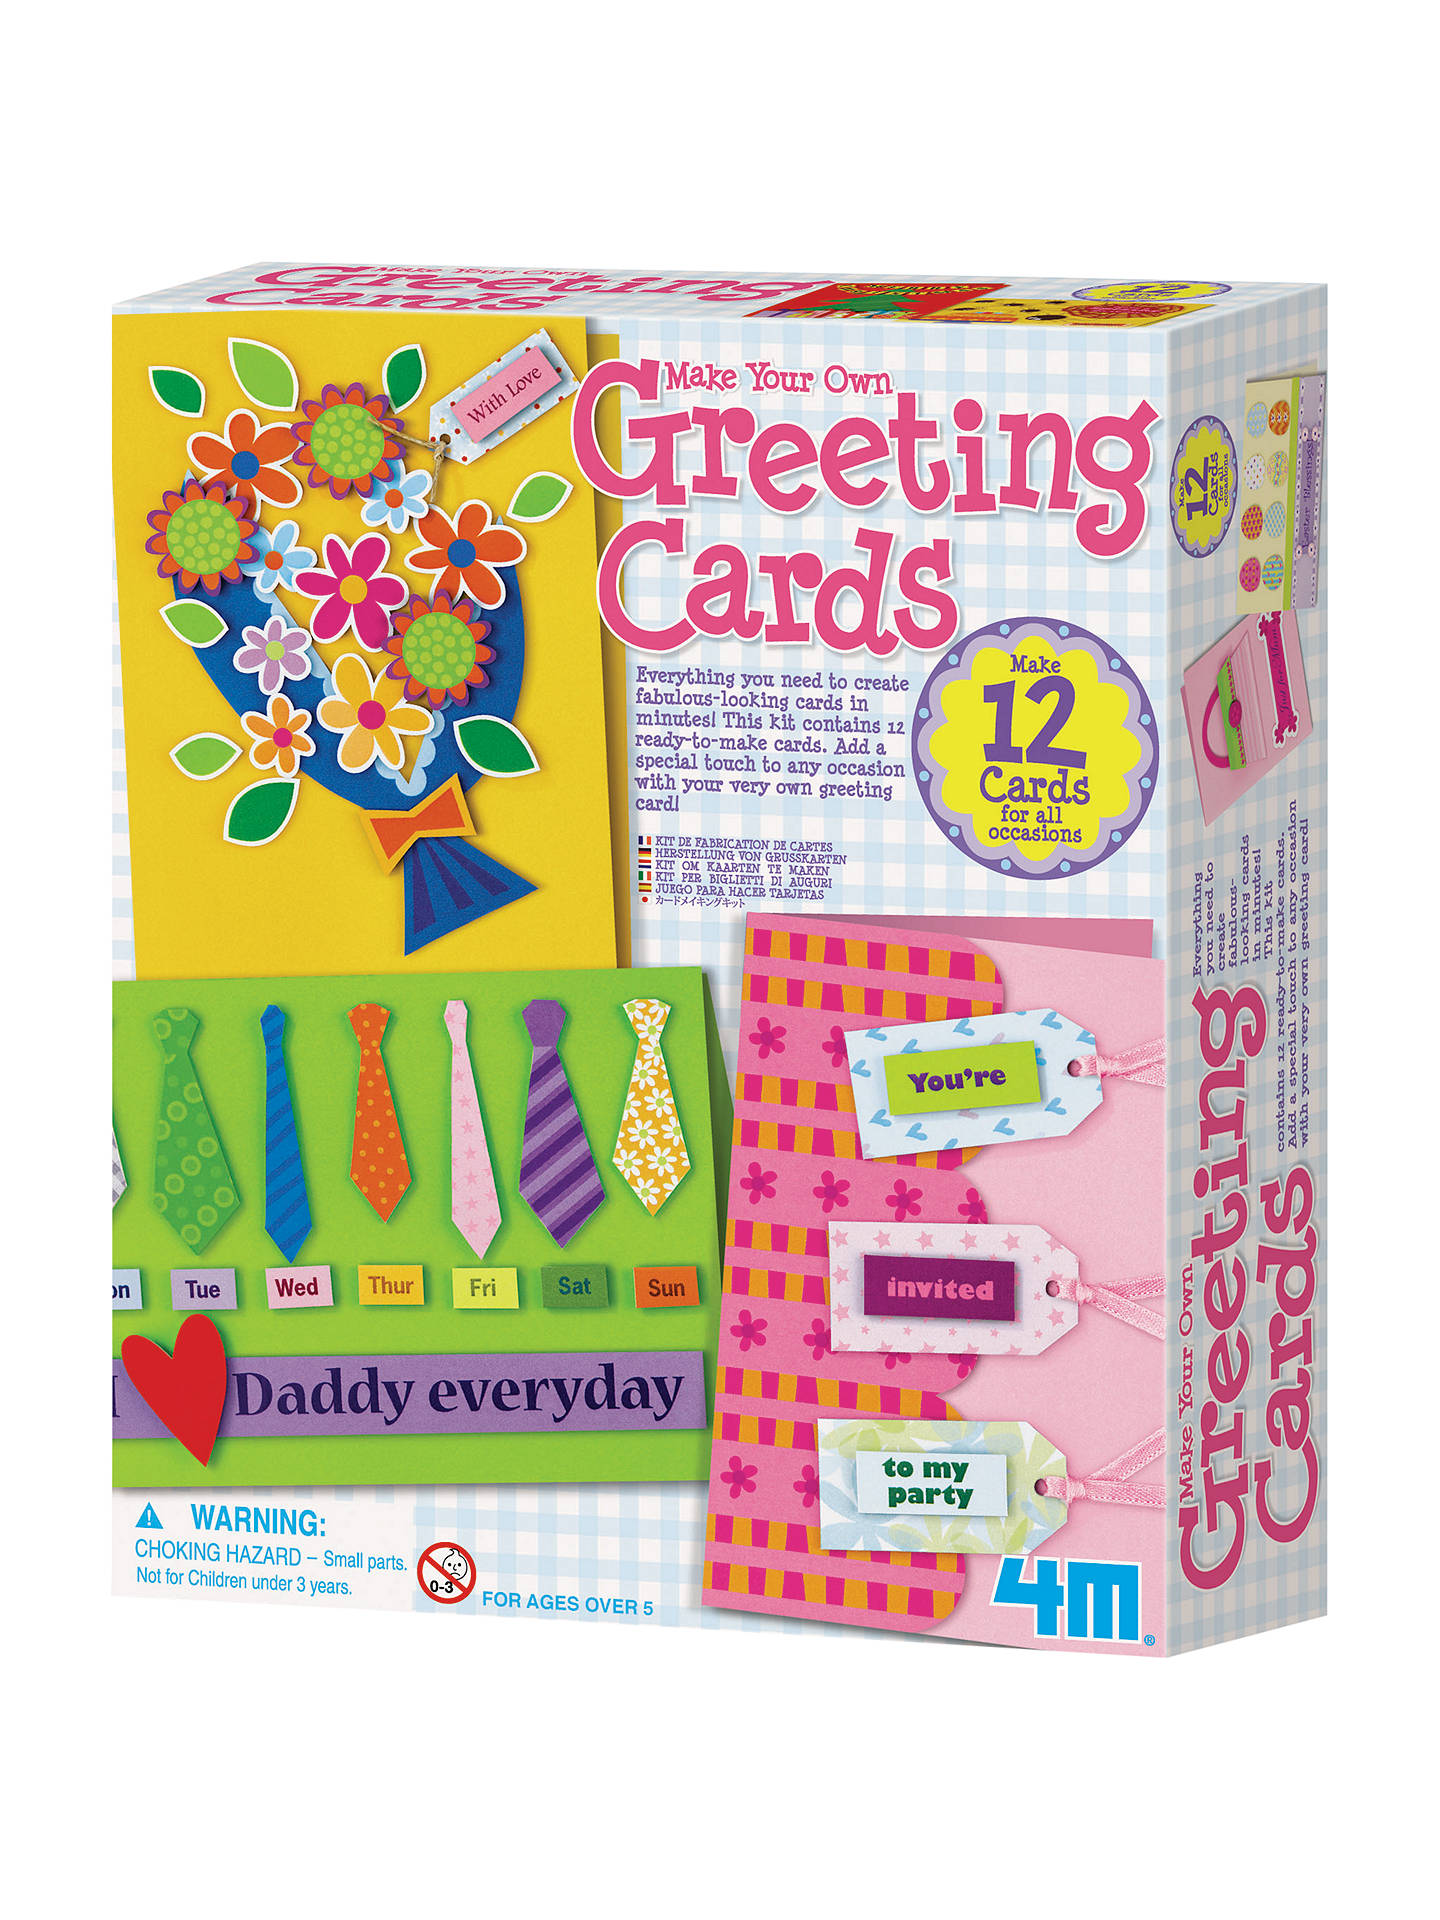 Great Gizmos Make Your Own Greeting Cards Kit at John Lewis & Partners